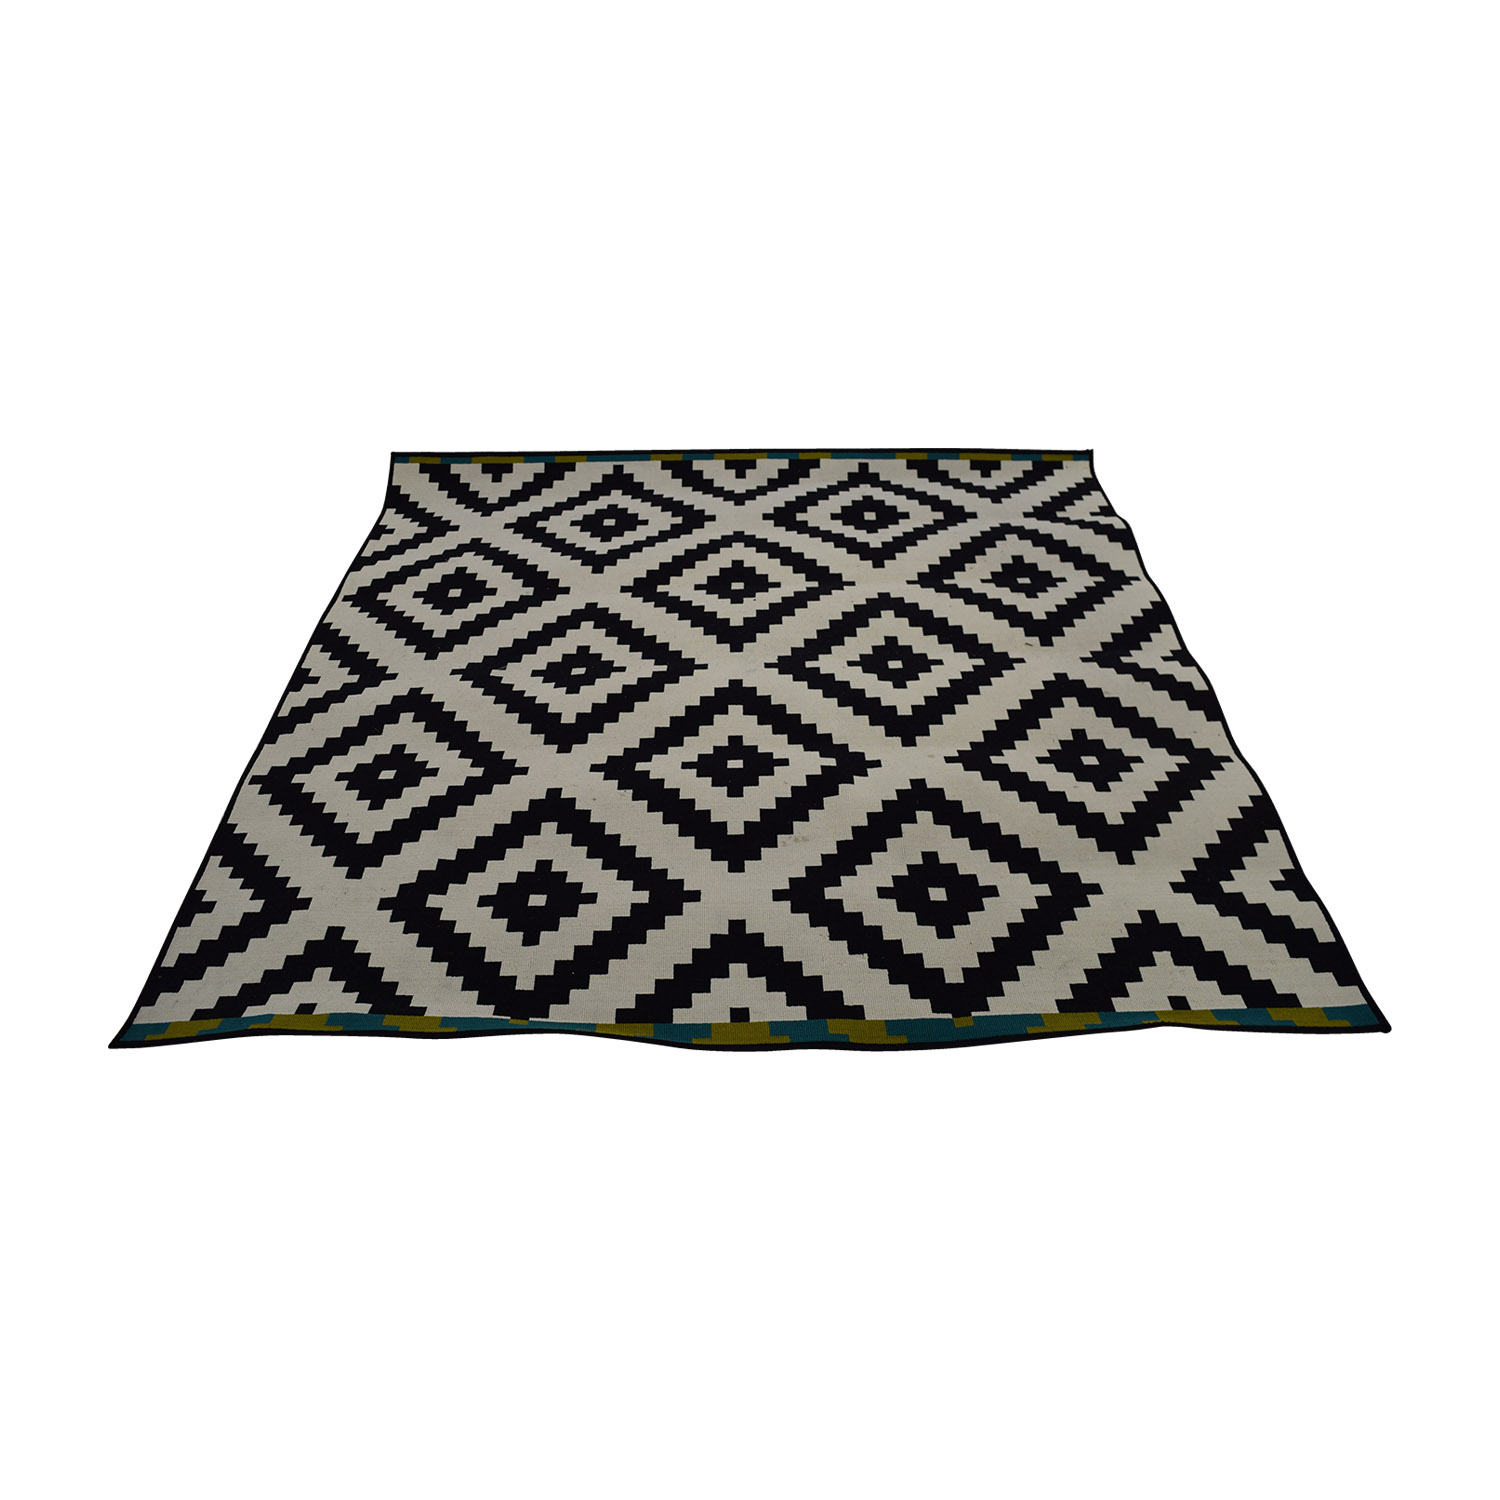 IKEA Black and White Rug / Rugs